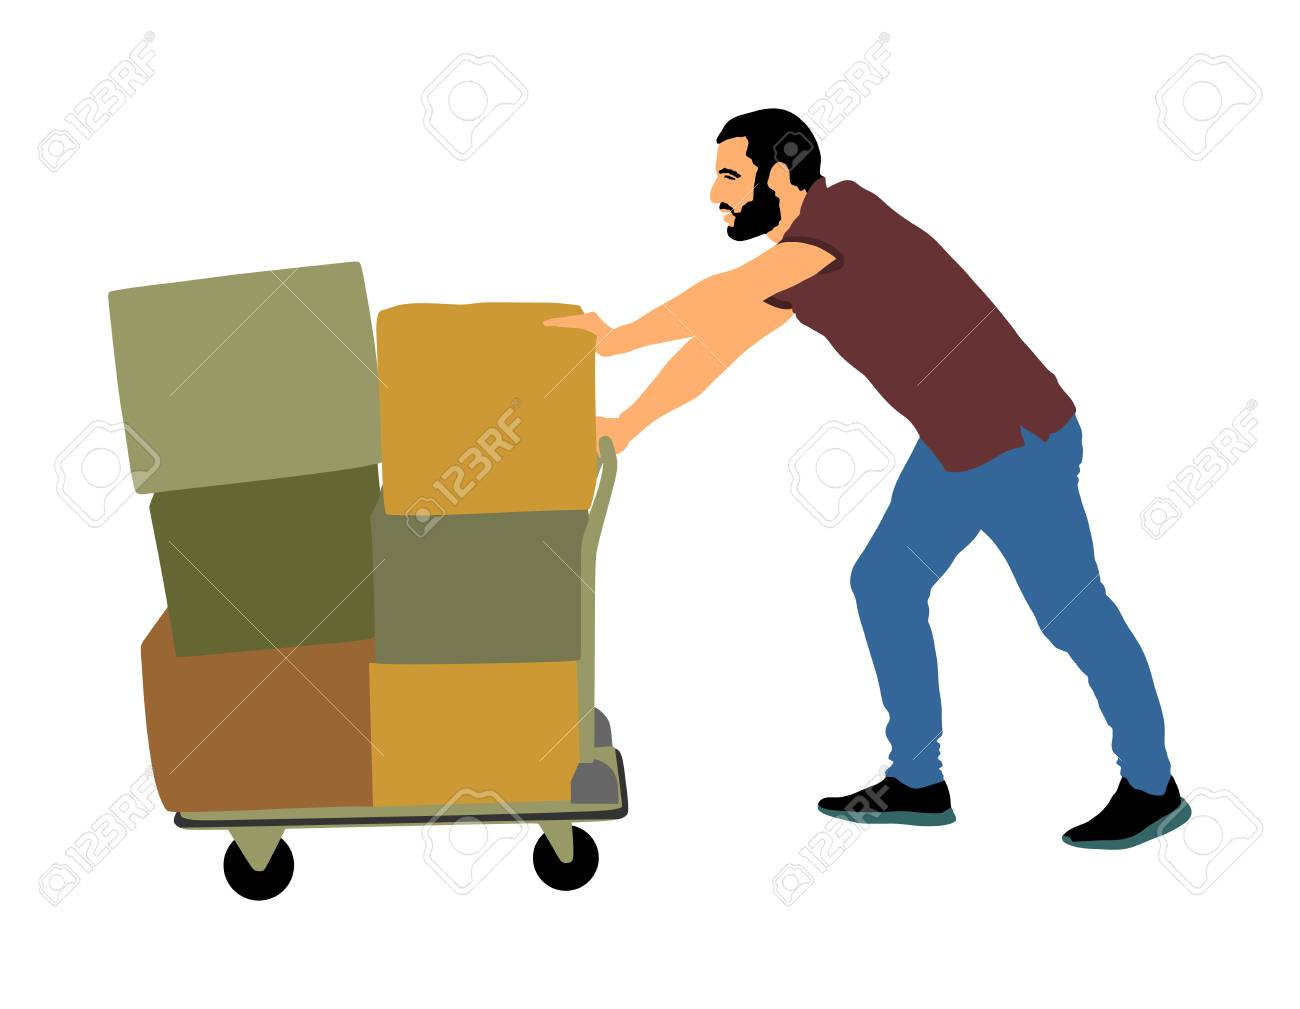 Hard worker pushing wheelbarrow and carry big box vector illustration isolated on white background. Delivery man moving package by cart. Service moving transport. Warehouse job activity. - 100035776